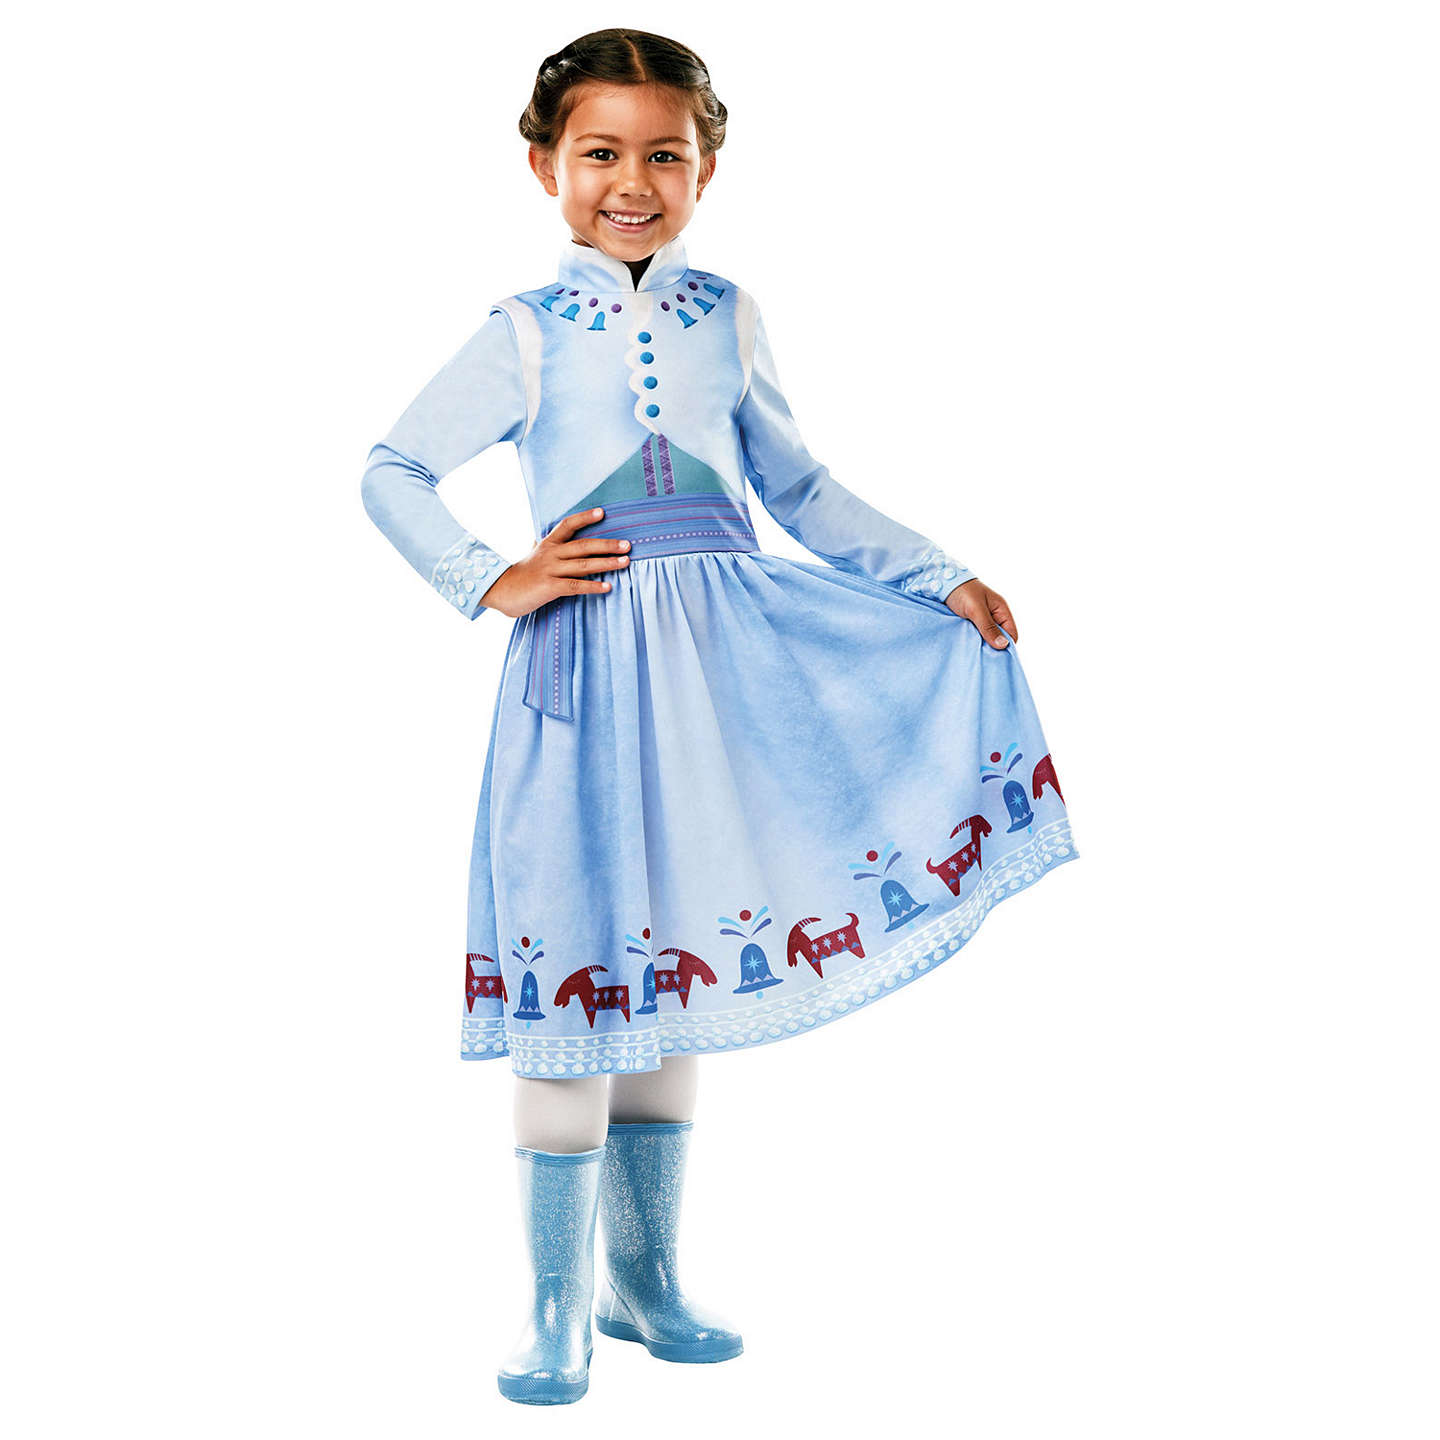 BuyDisney Princess Olafu0027s Frozen Adventure Anna Costume S (3-4 yrs) Online ...  sc 1 st  John Lewis & Disney Princess Olafu0027s Frozen Adventure Anna Costume at John Lewis